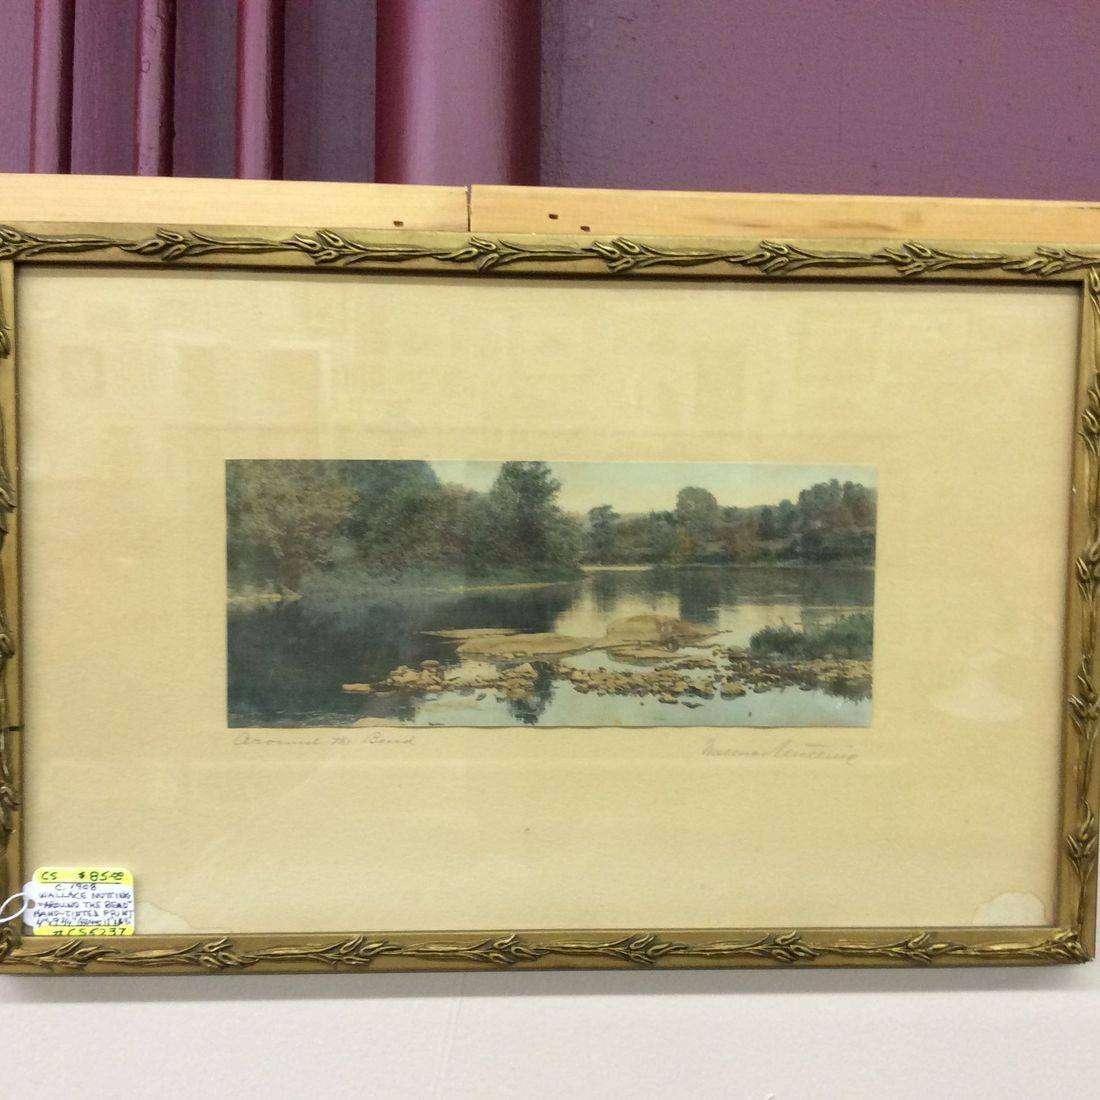 """C. 1908 Wallace Nutting  """"Around the Bend""""  Hand- Tinted Print  4"""" x 9-3/4""""  frame: 11"""" x 16-1/2""""   $85.00"""